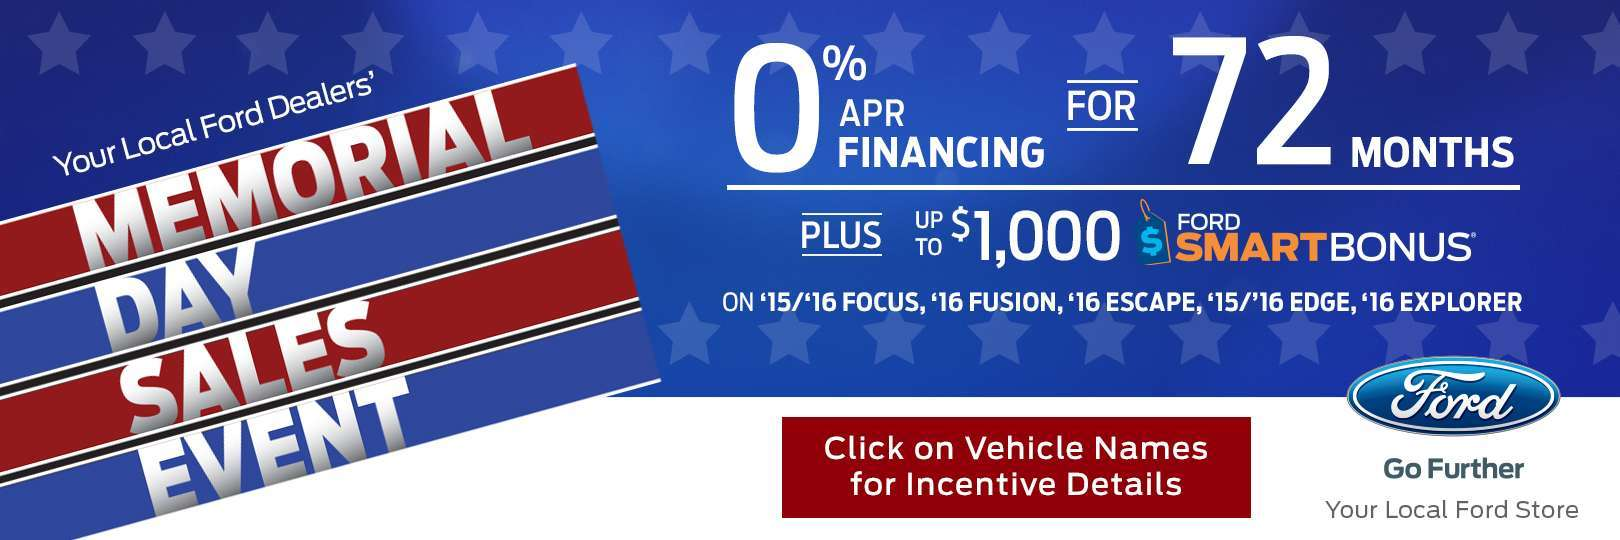 Memorial Day Used Car Sales